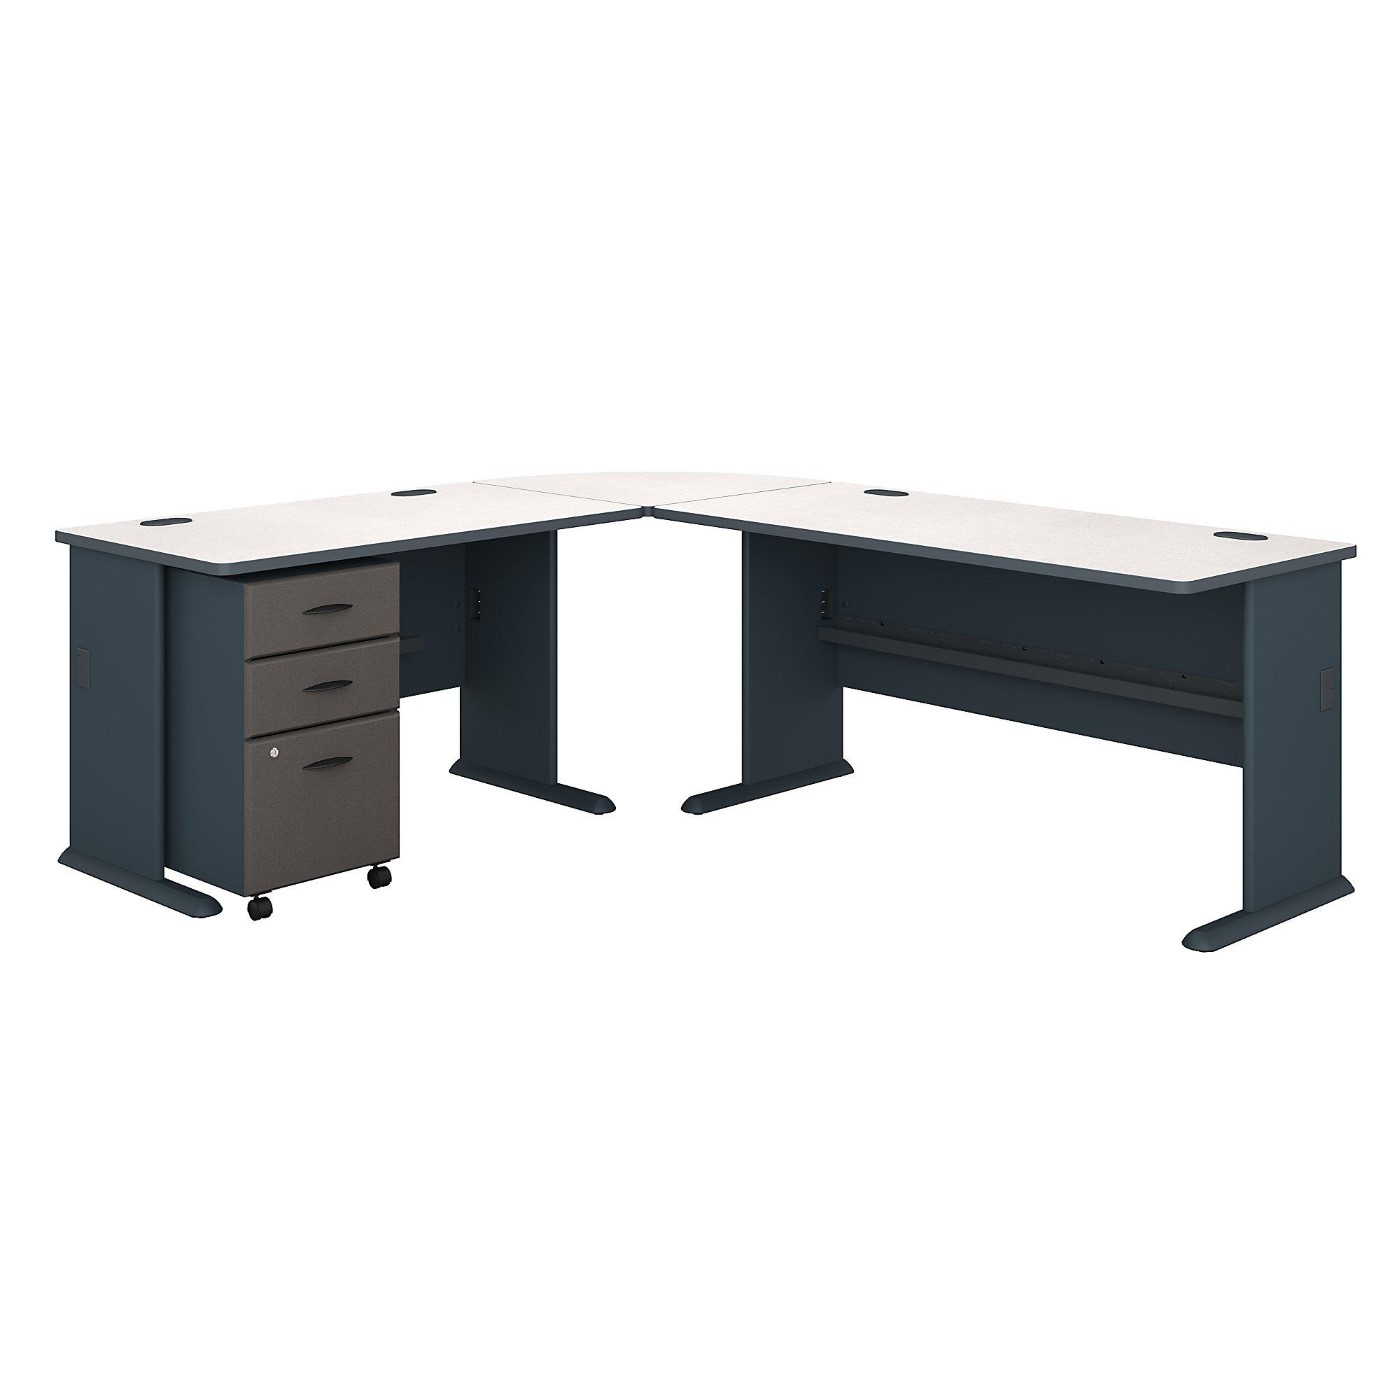 BUSH BUSINESS FURNITURE SERIES A 87W X 75D L SHAPED DESK WITH MOBILE FILE CABINET. FREE SHIPPING.